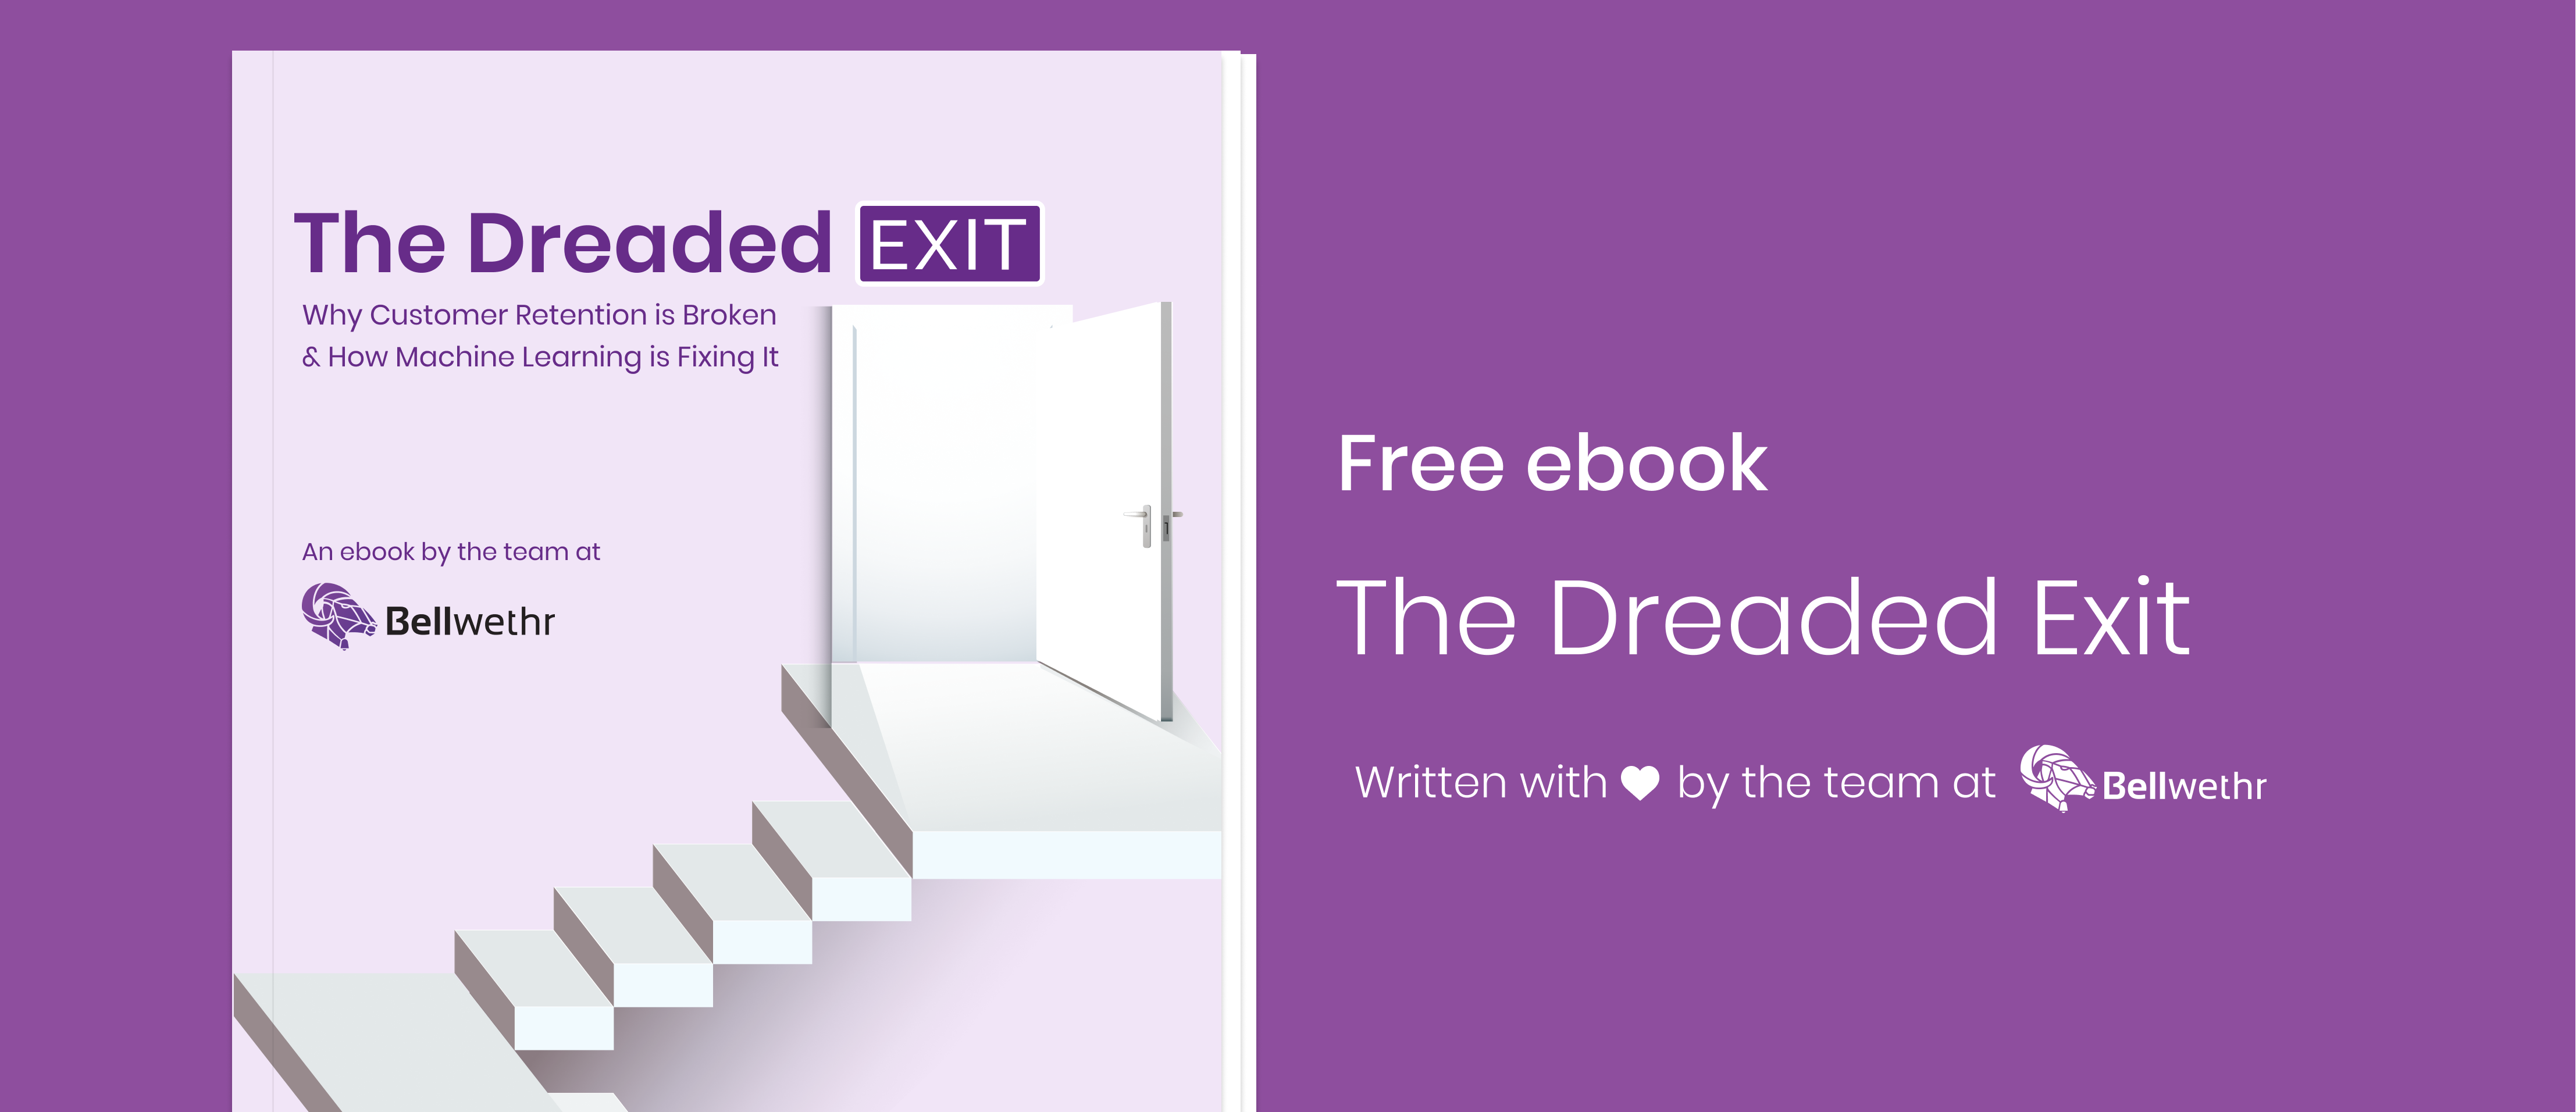 Ebook: The Dreaded Exit